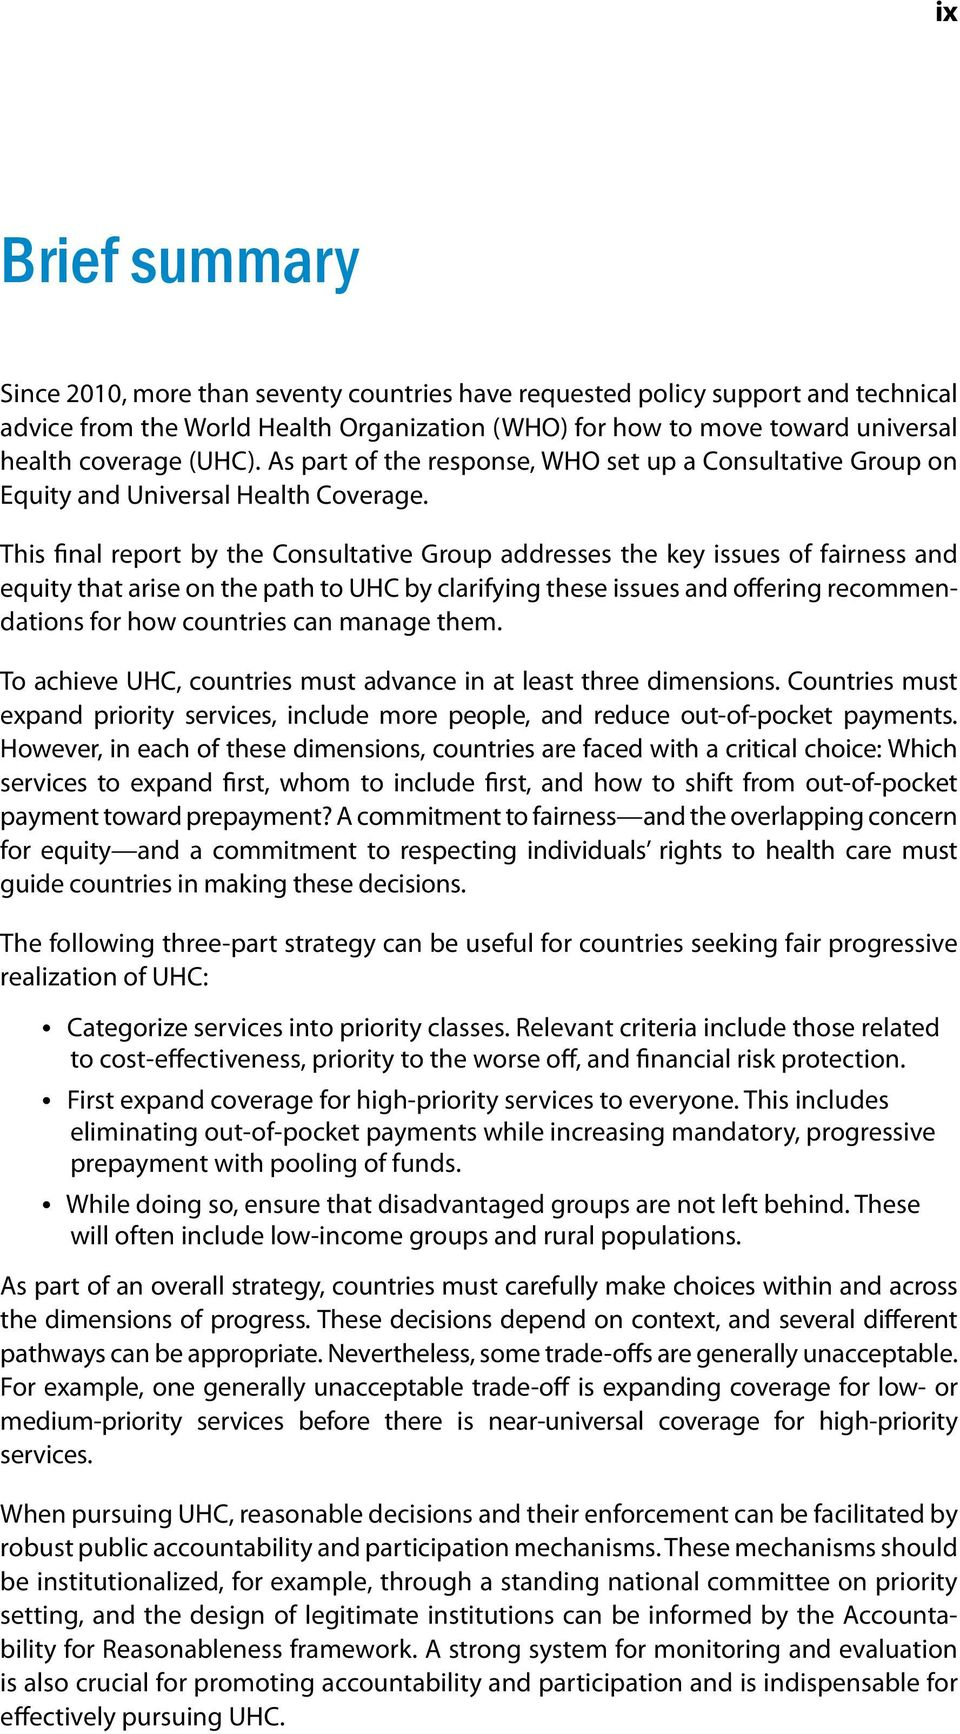 This final report by the Consultative Group addresses the key issues of fairness and equity that arise on the path to UHC by clarifying these issues and offering recommendations for how countries can